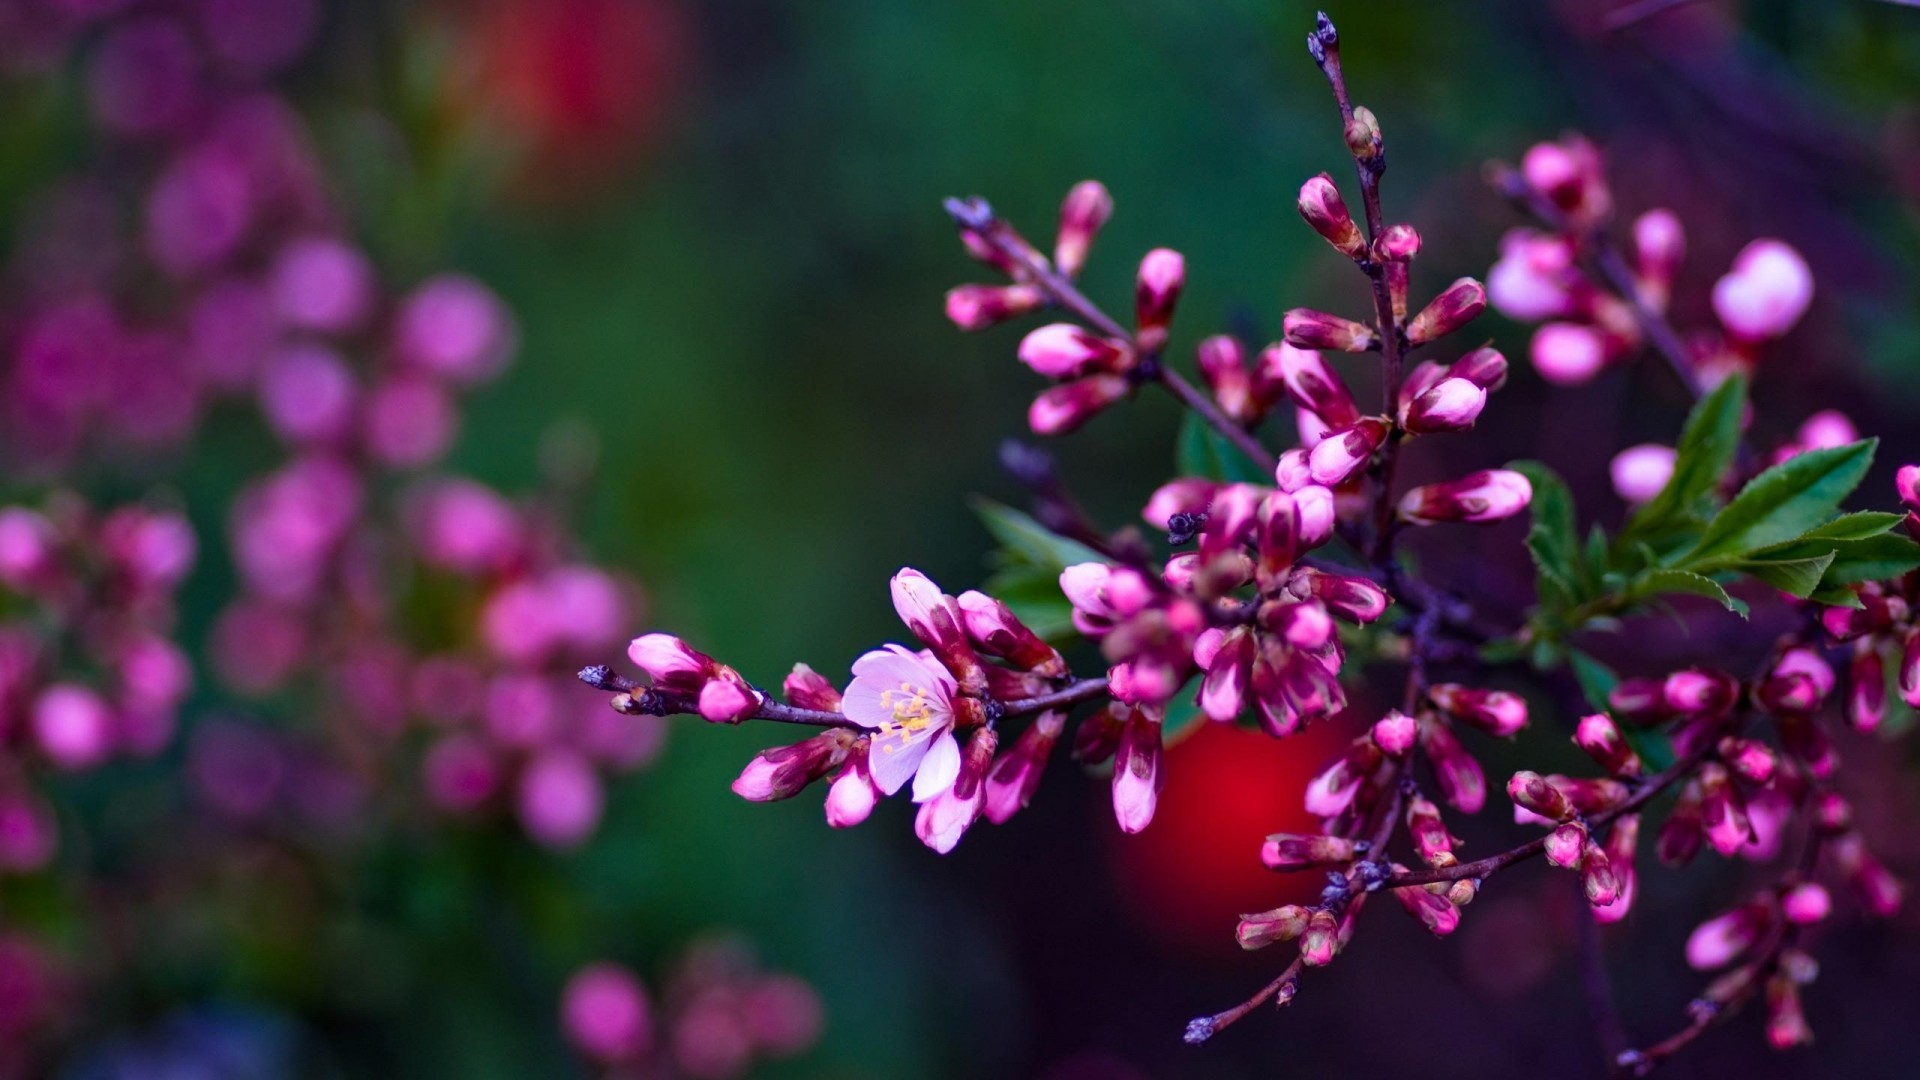 spring wallpaper and screensavers hd (70+ images)